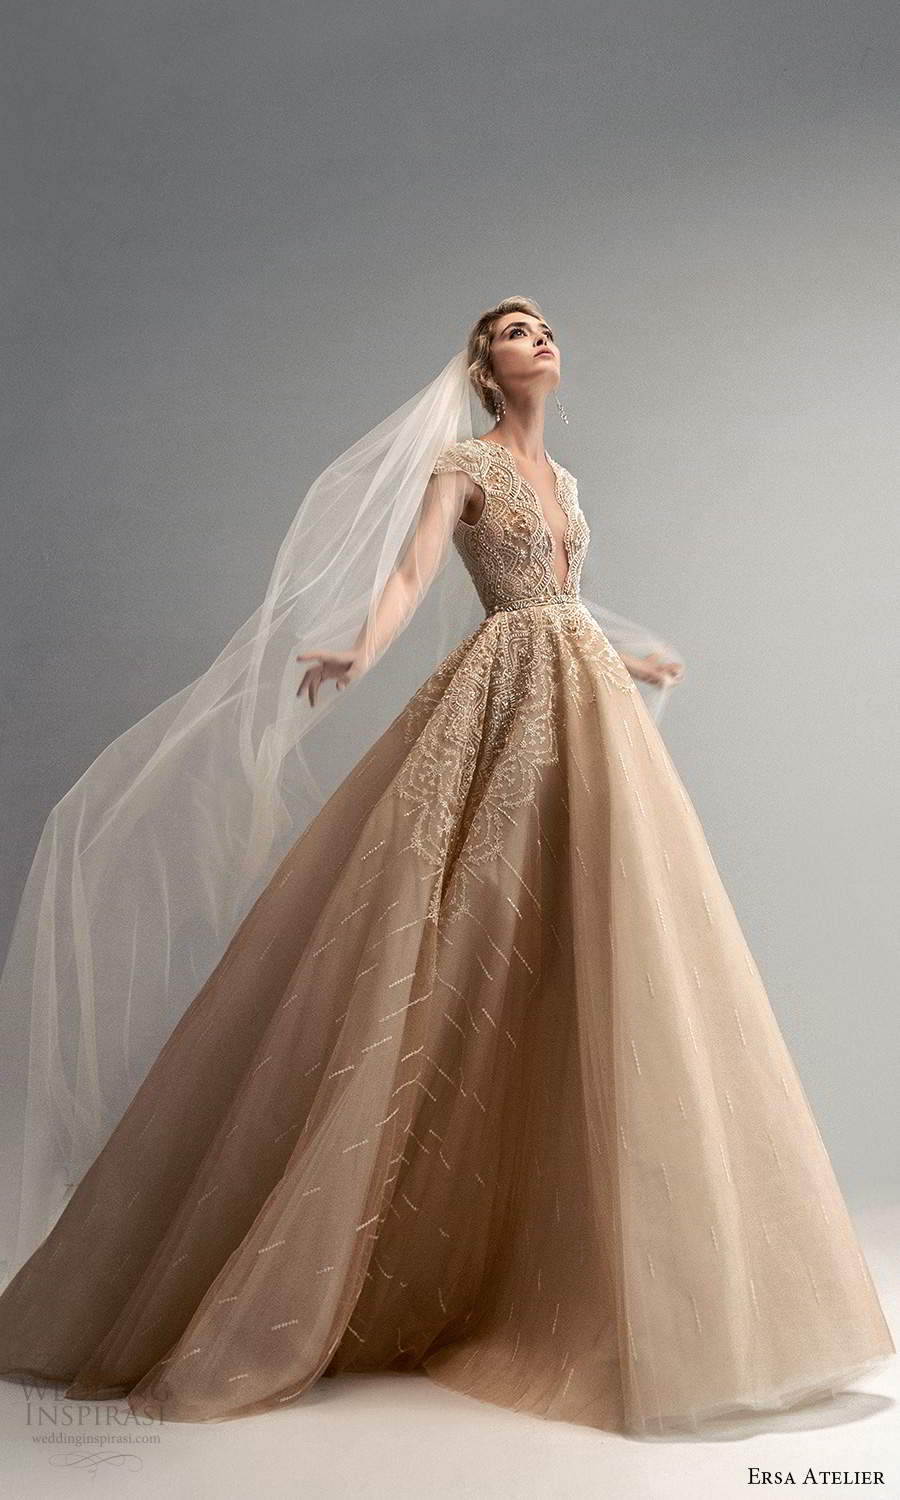 ersa atelier spring 2021 bridal cap sleeves plunging v neckline heavily embellished bodice a line ball gown wedding dress chapel train gold (19) mv